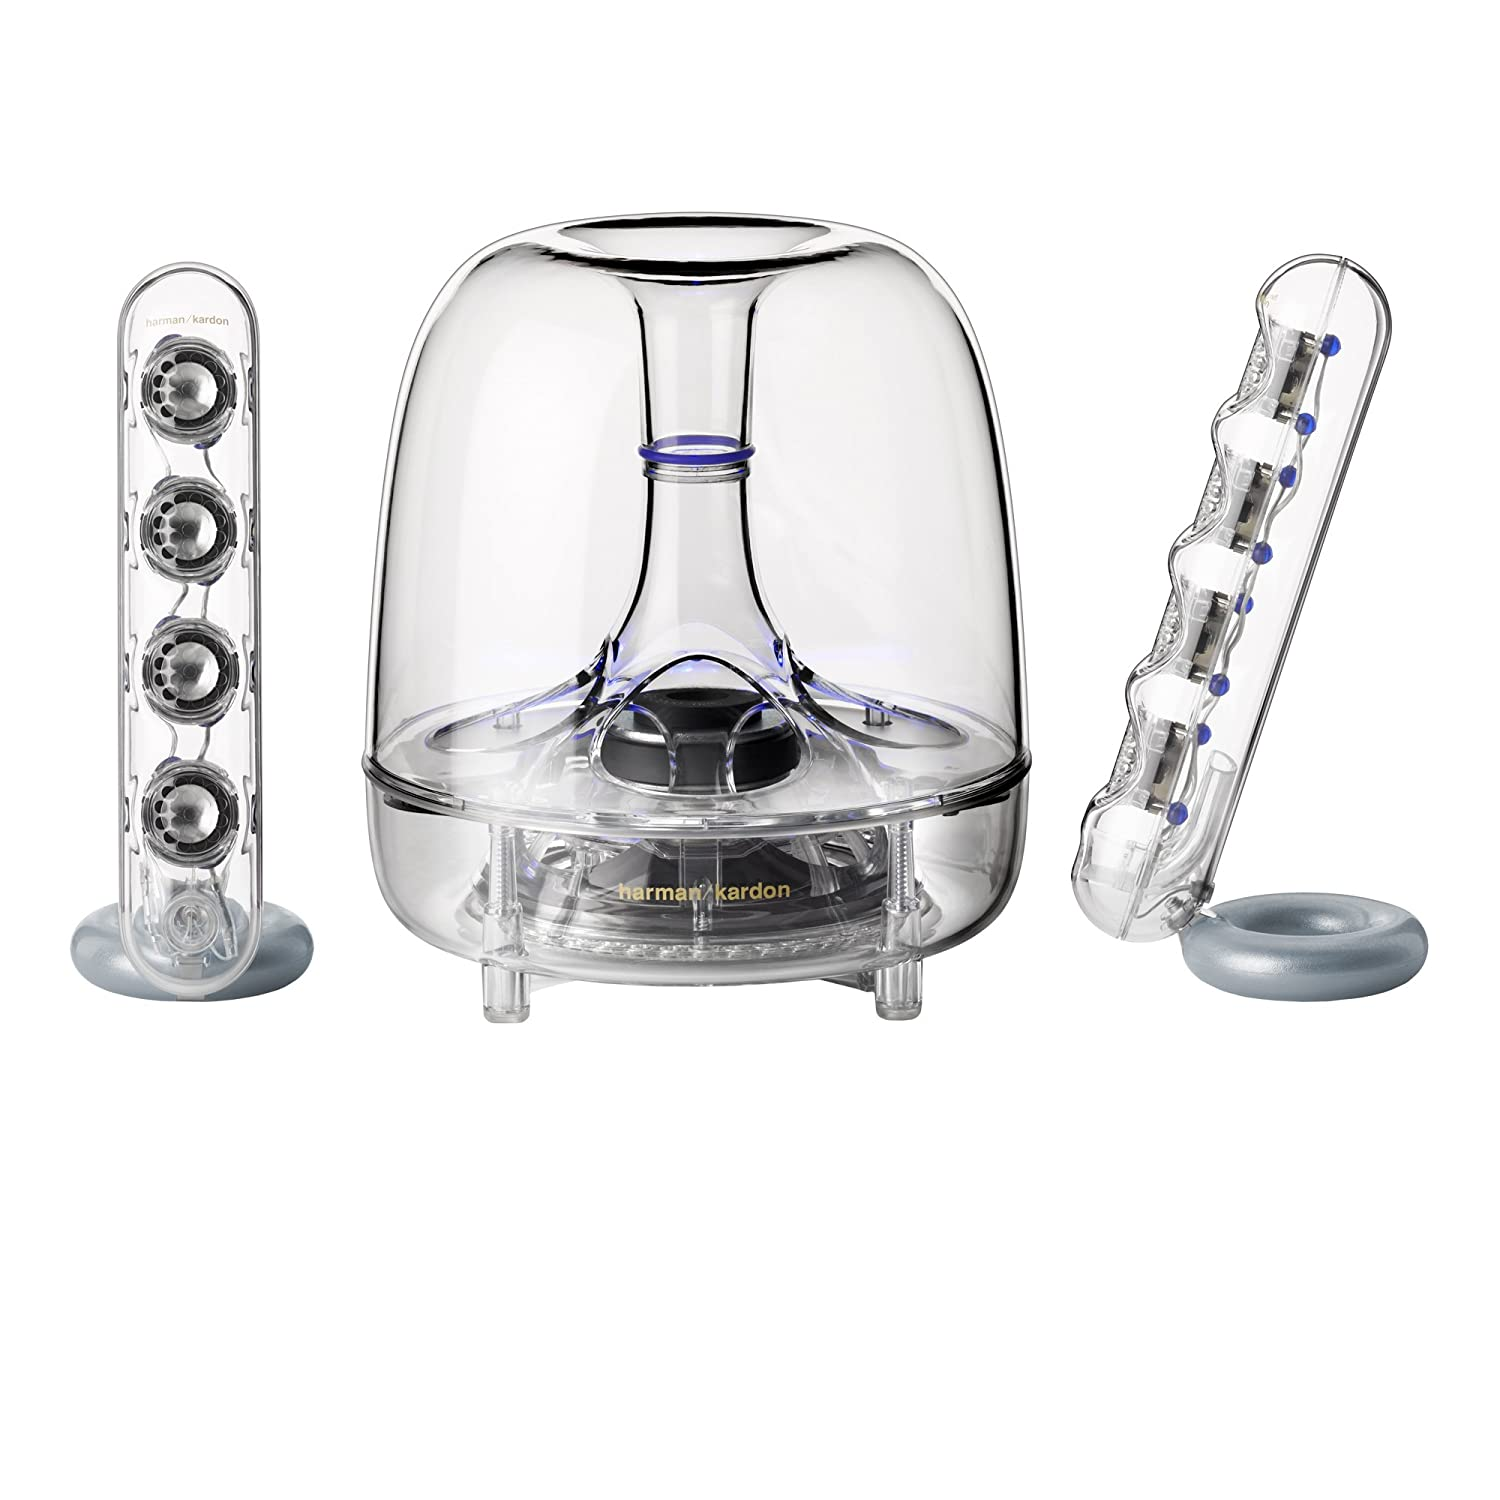 Harman kardon SoundSticks II – PC Multimedia Speaker System D32089 Category PC Speakers